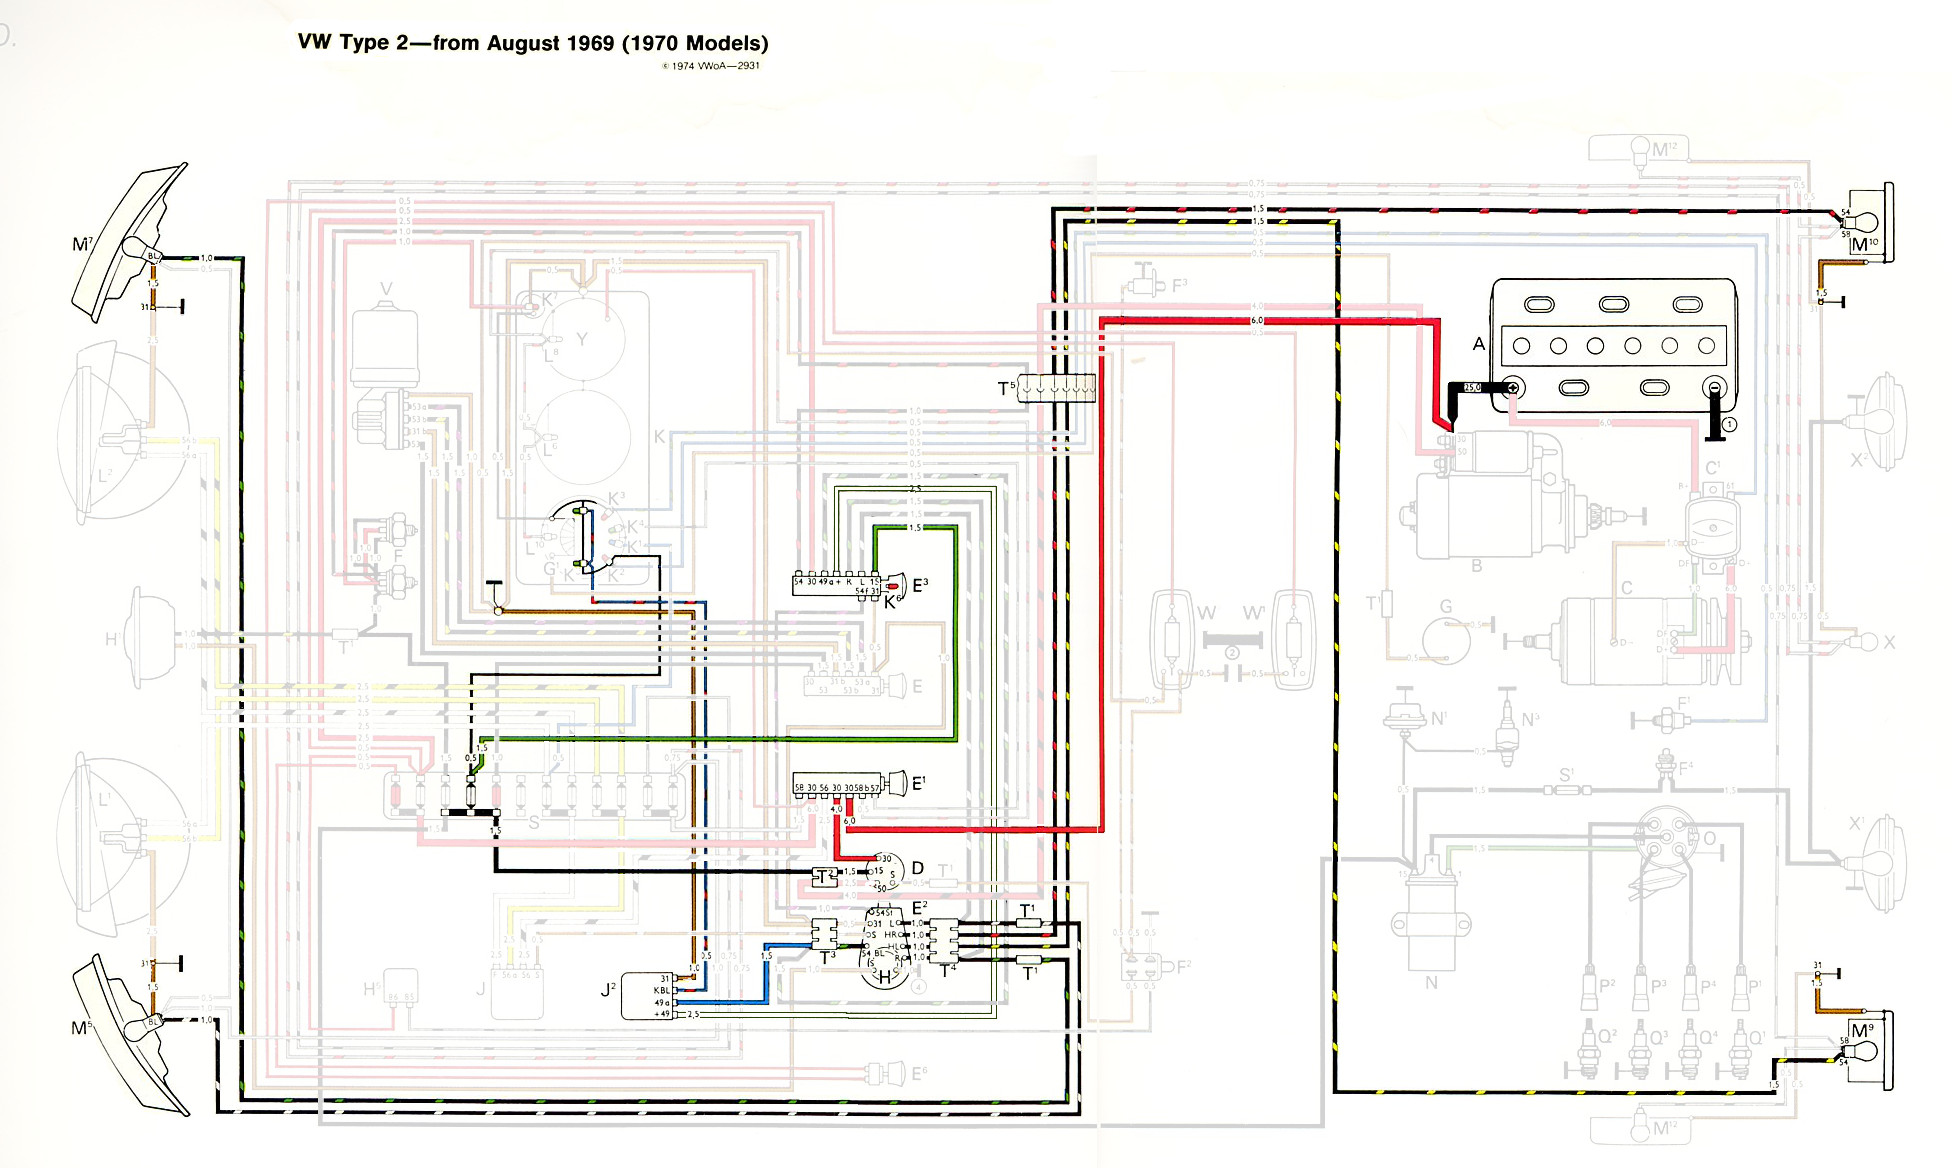 thesamba com type 2 wiring diagrams rh thesamba com bus wiring diagrams for model railroad thomas c2 school bus wiring diagrams